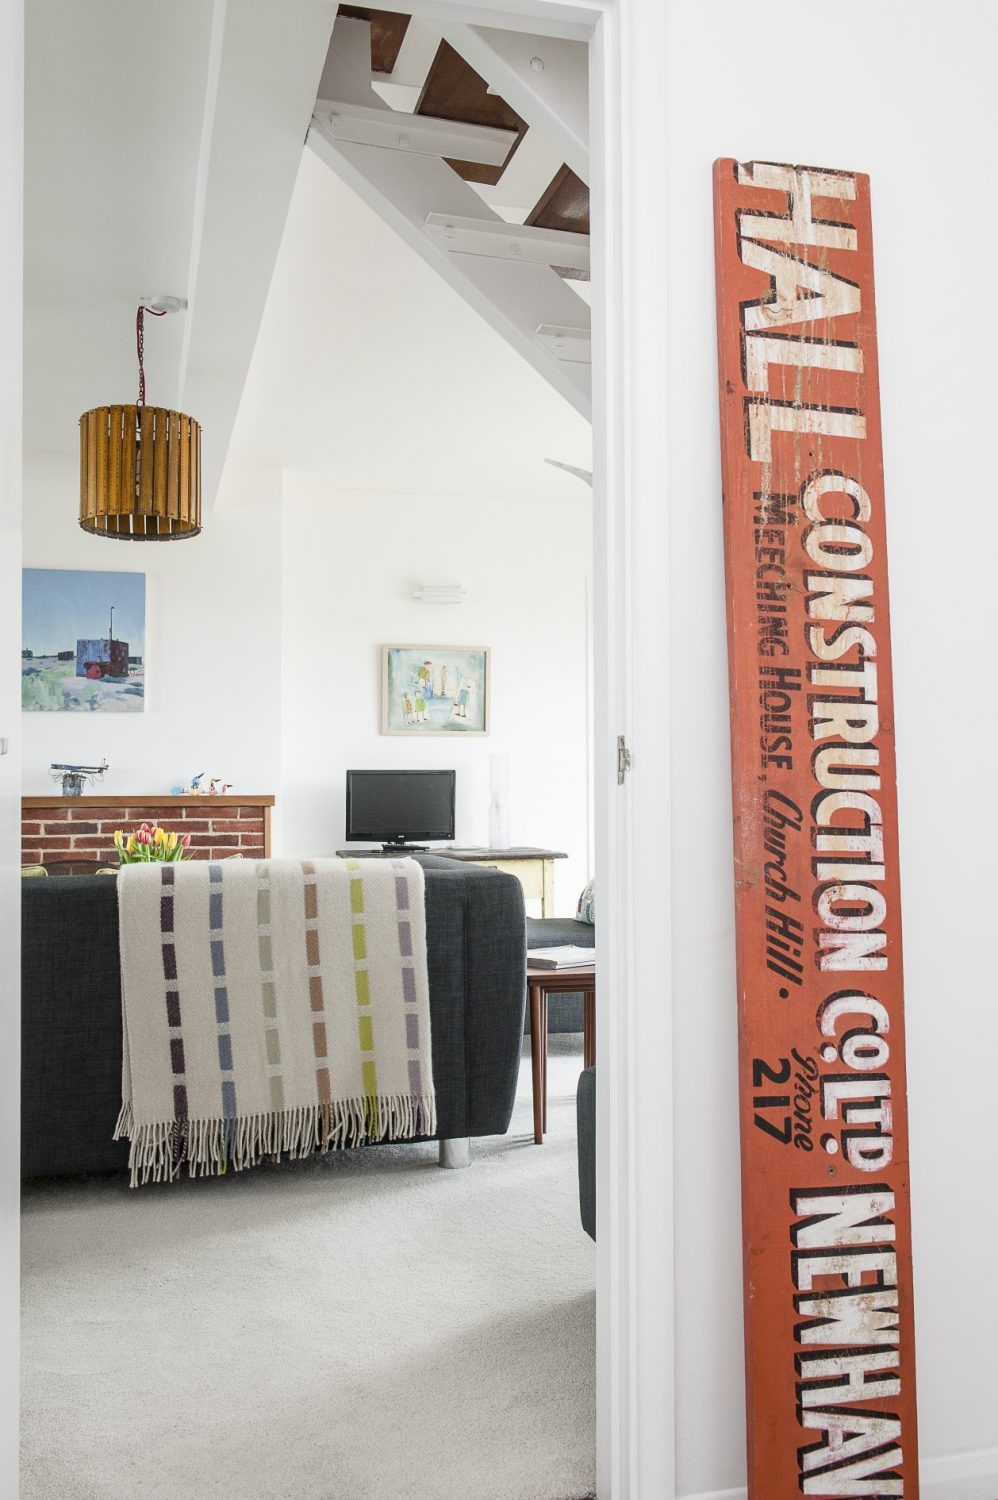 The use of bold and sizeable reclaimed signs is a recurrent theme in each room